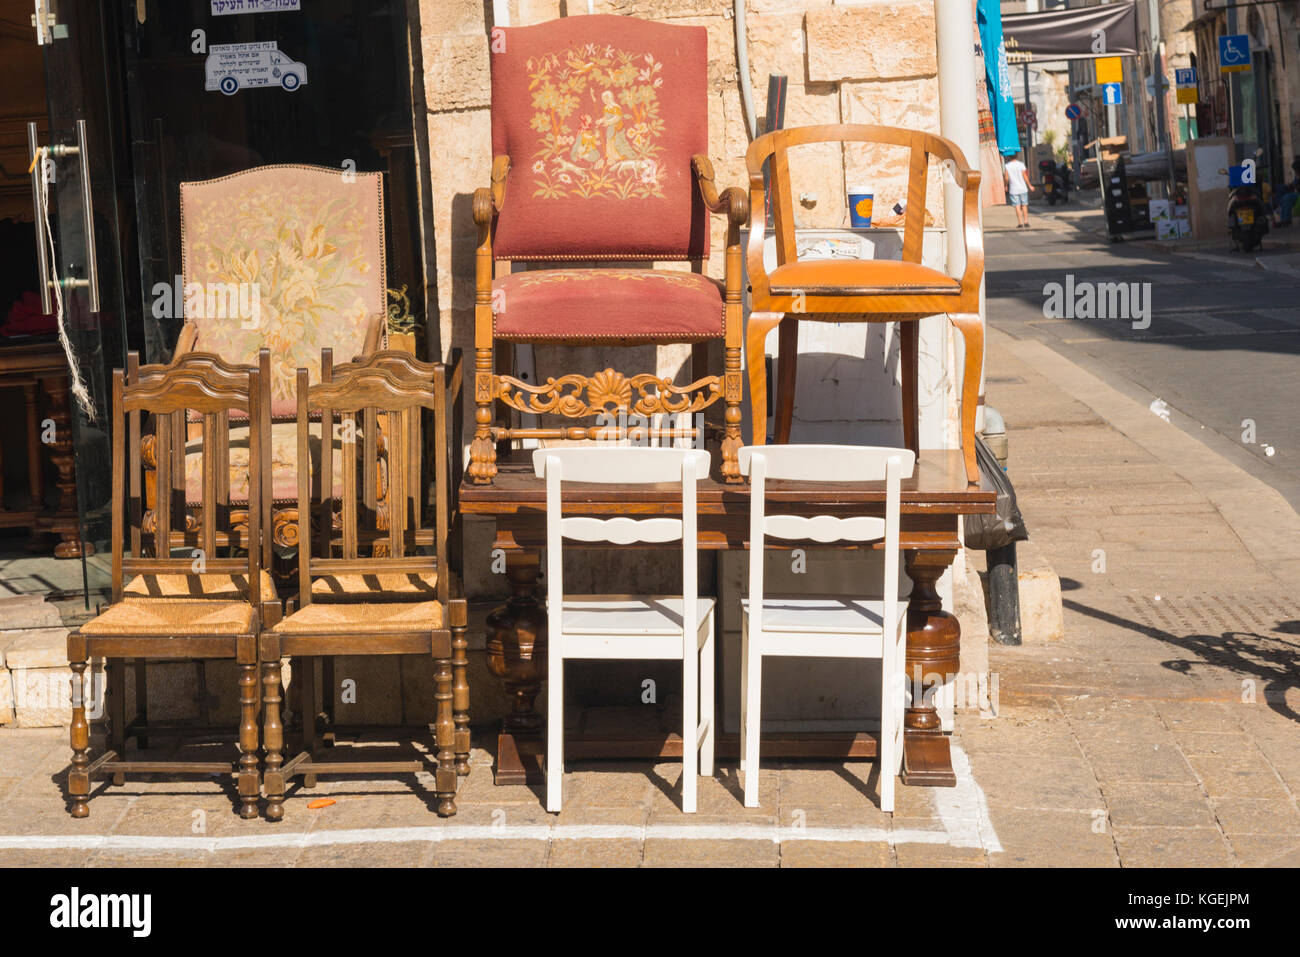 Secondhand Store Immagini & Secondhand Store Fotos Stock - Alamy